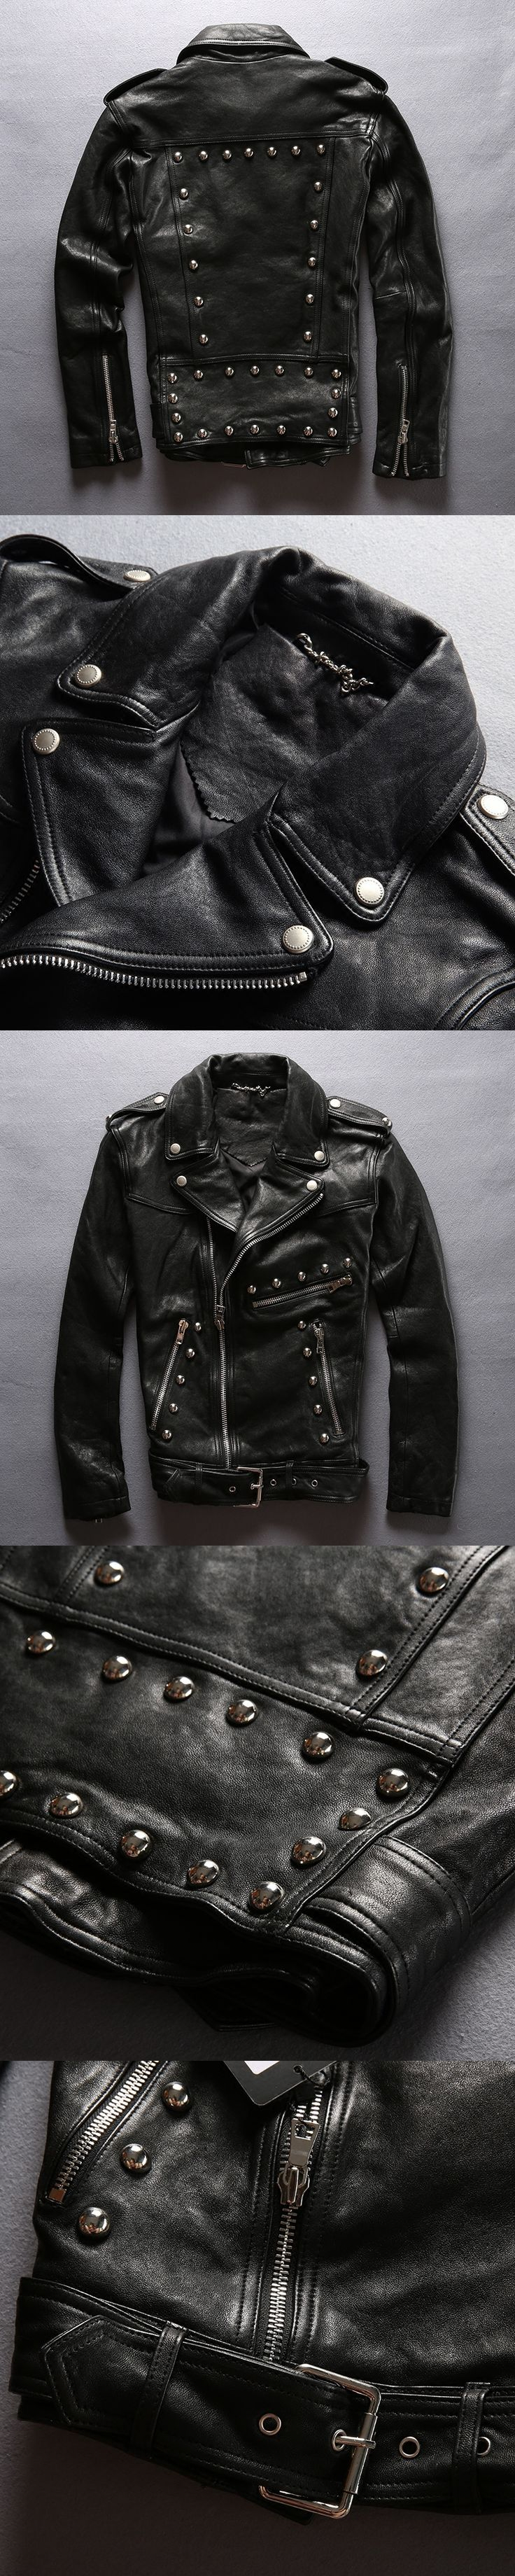 Fashion rivet slim fit leather motorcycle jacket men tight style black sheepskin moto biker jacket for men punk leather coat men